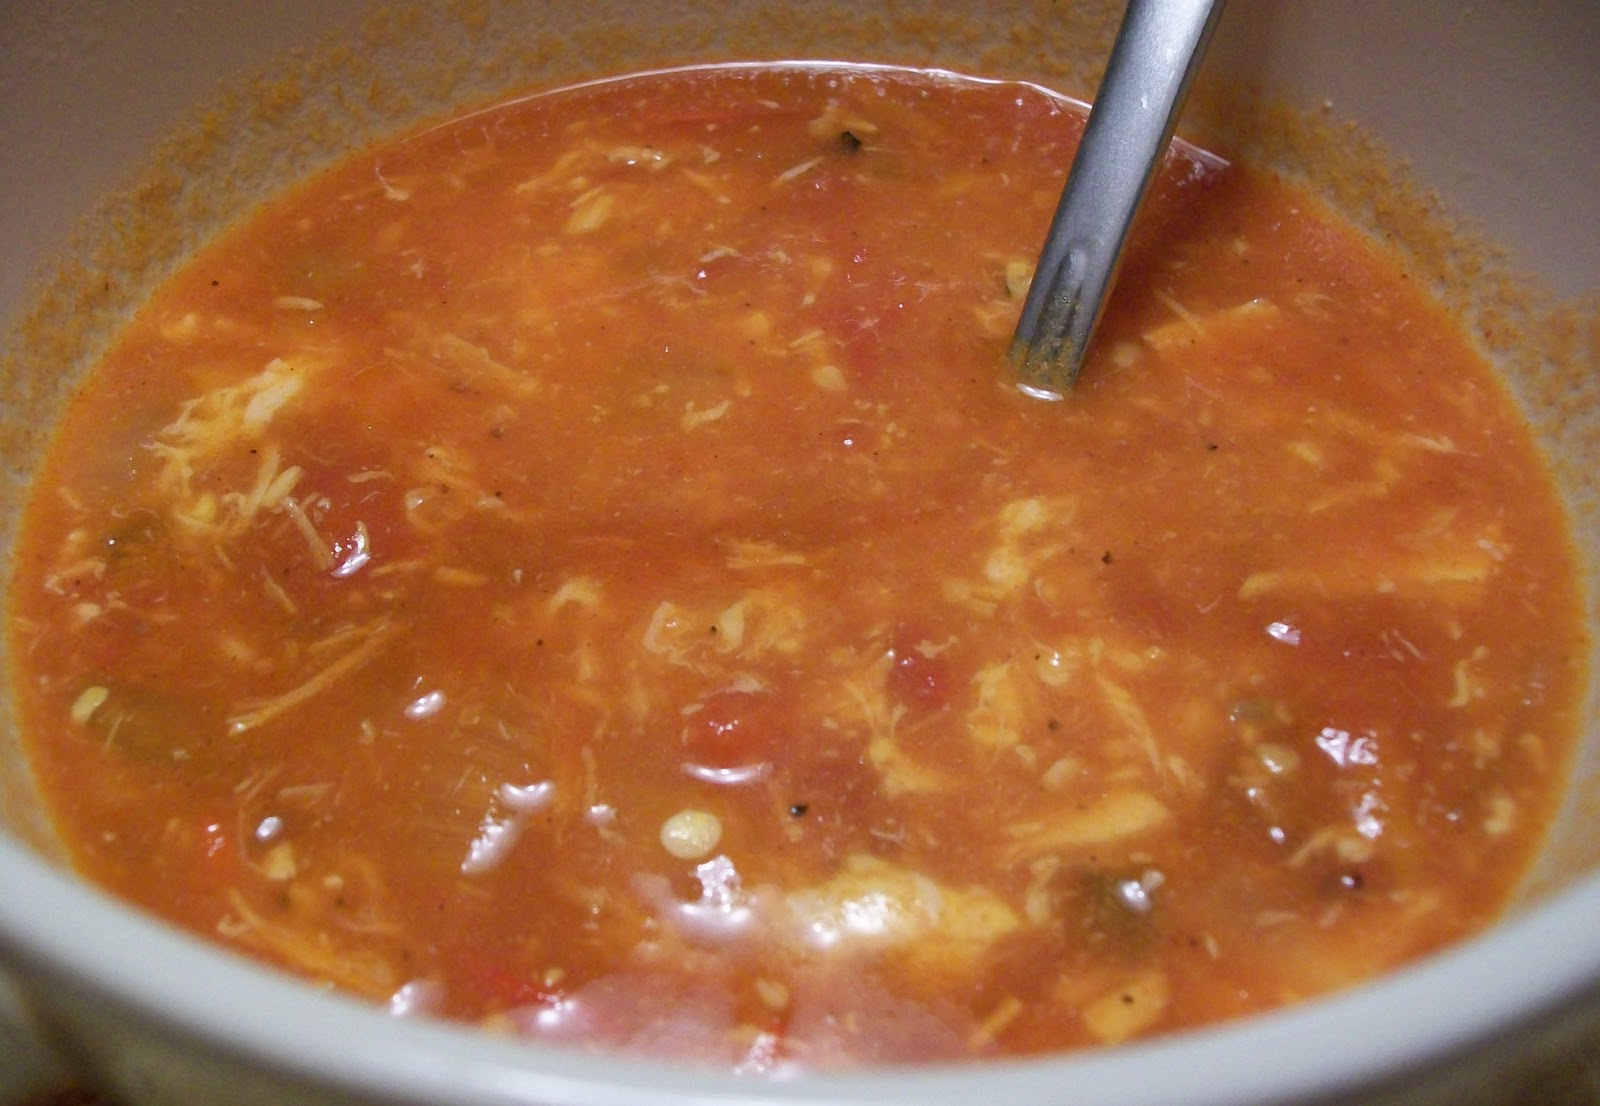 Elizabeth's Cooking Experiments: Buffalo Chicken Chili